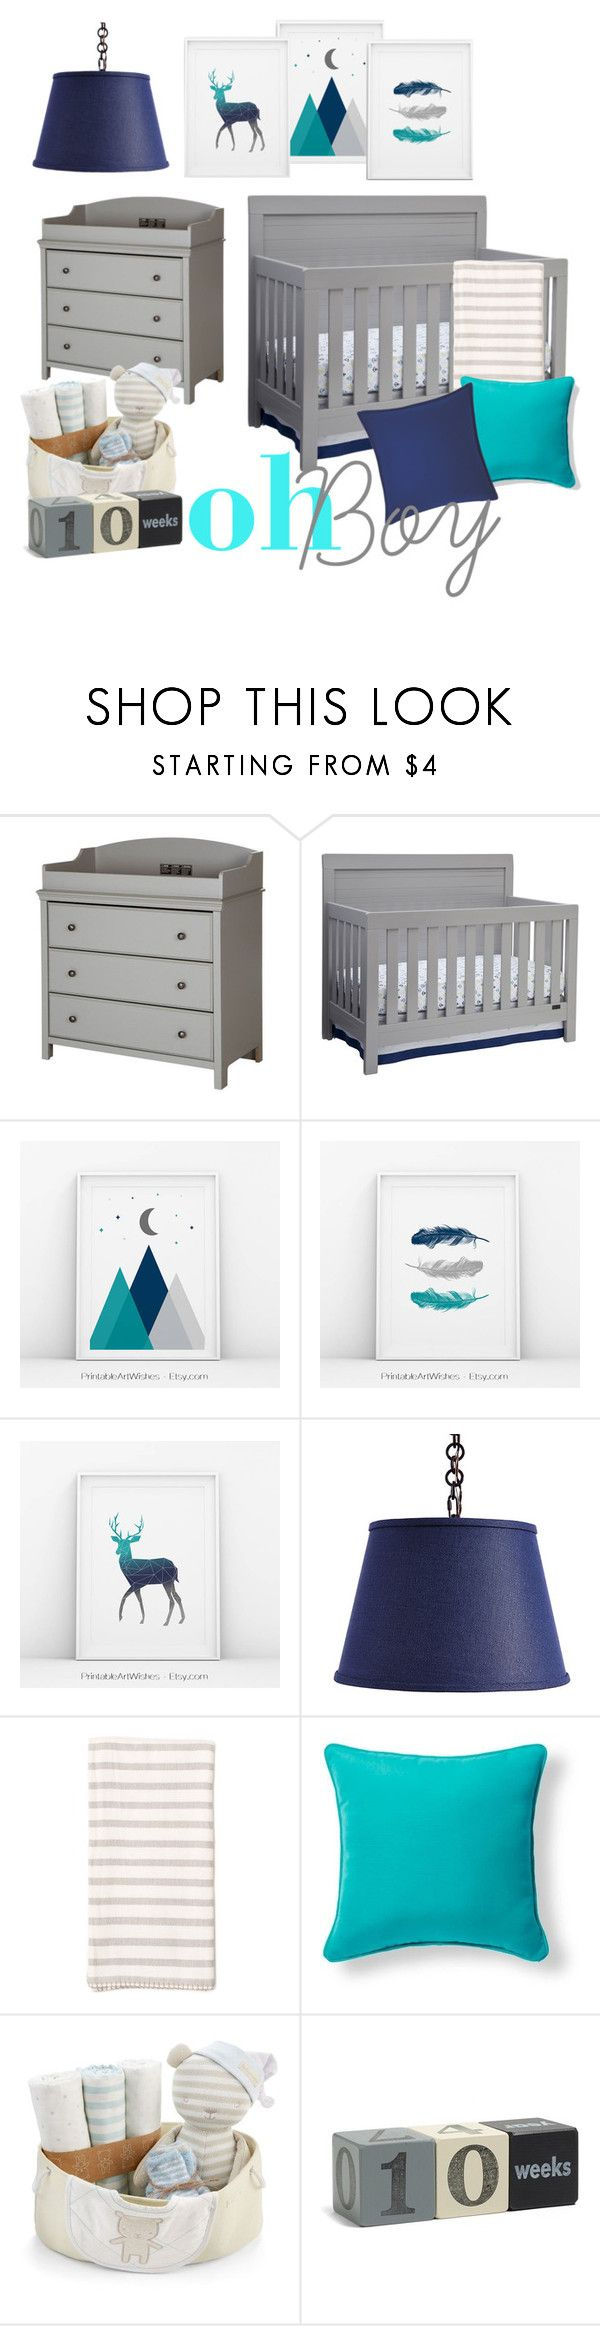 """""""Navy, Teal and gray nursery"""" by pwishes on Polyvore featuring interior, interiors, interior design, hogar, home decor, interior decorating, South Shore, Simmons, Ballard Designs y Zestt"""